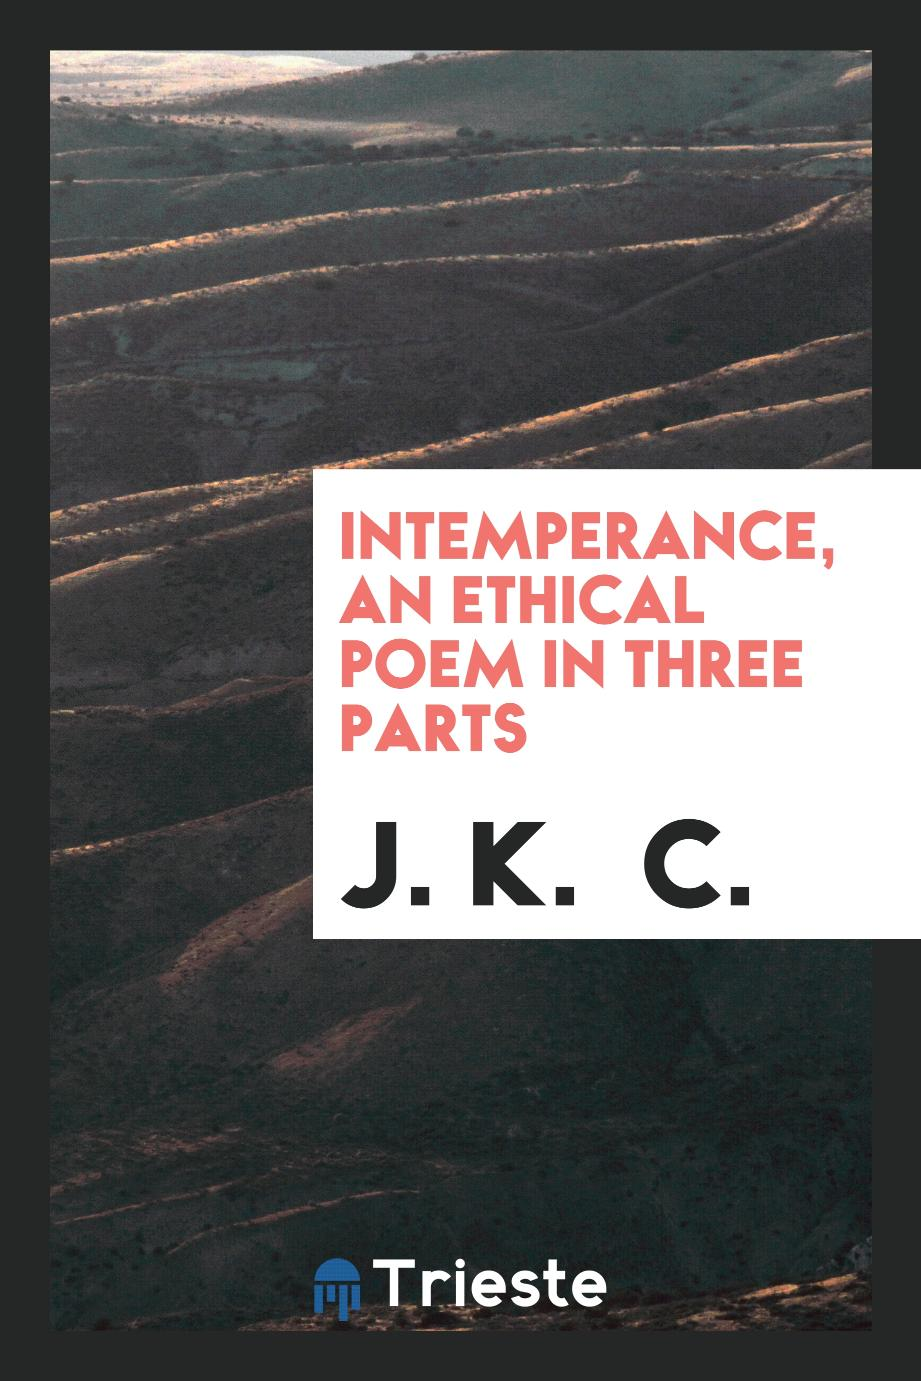 Intemperance, an ethical poem in three parts